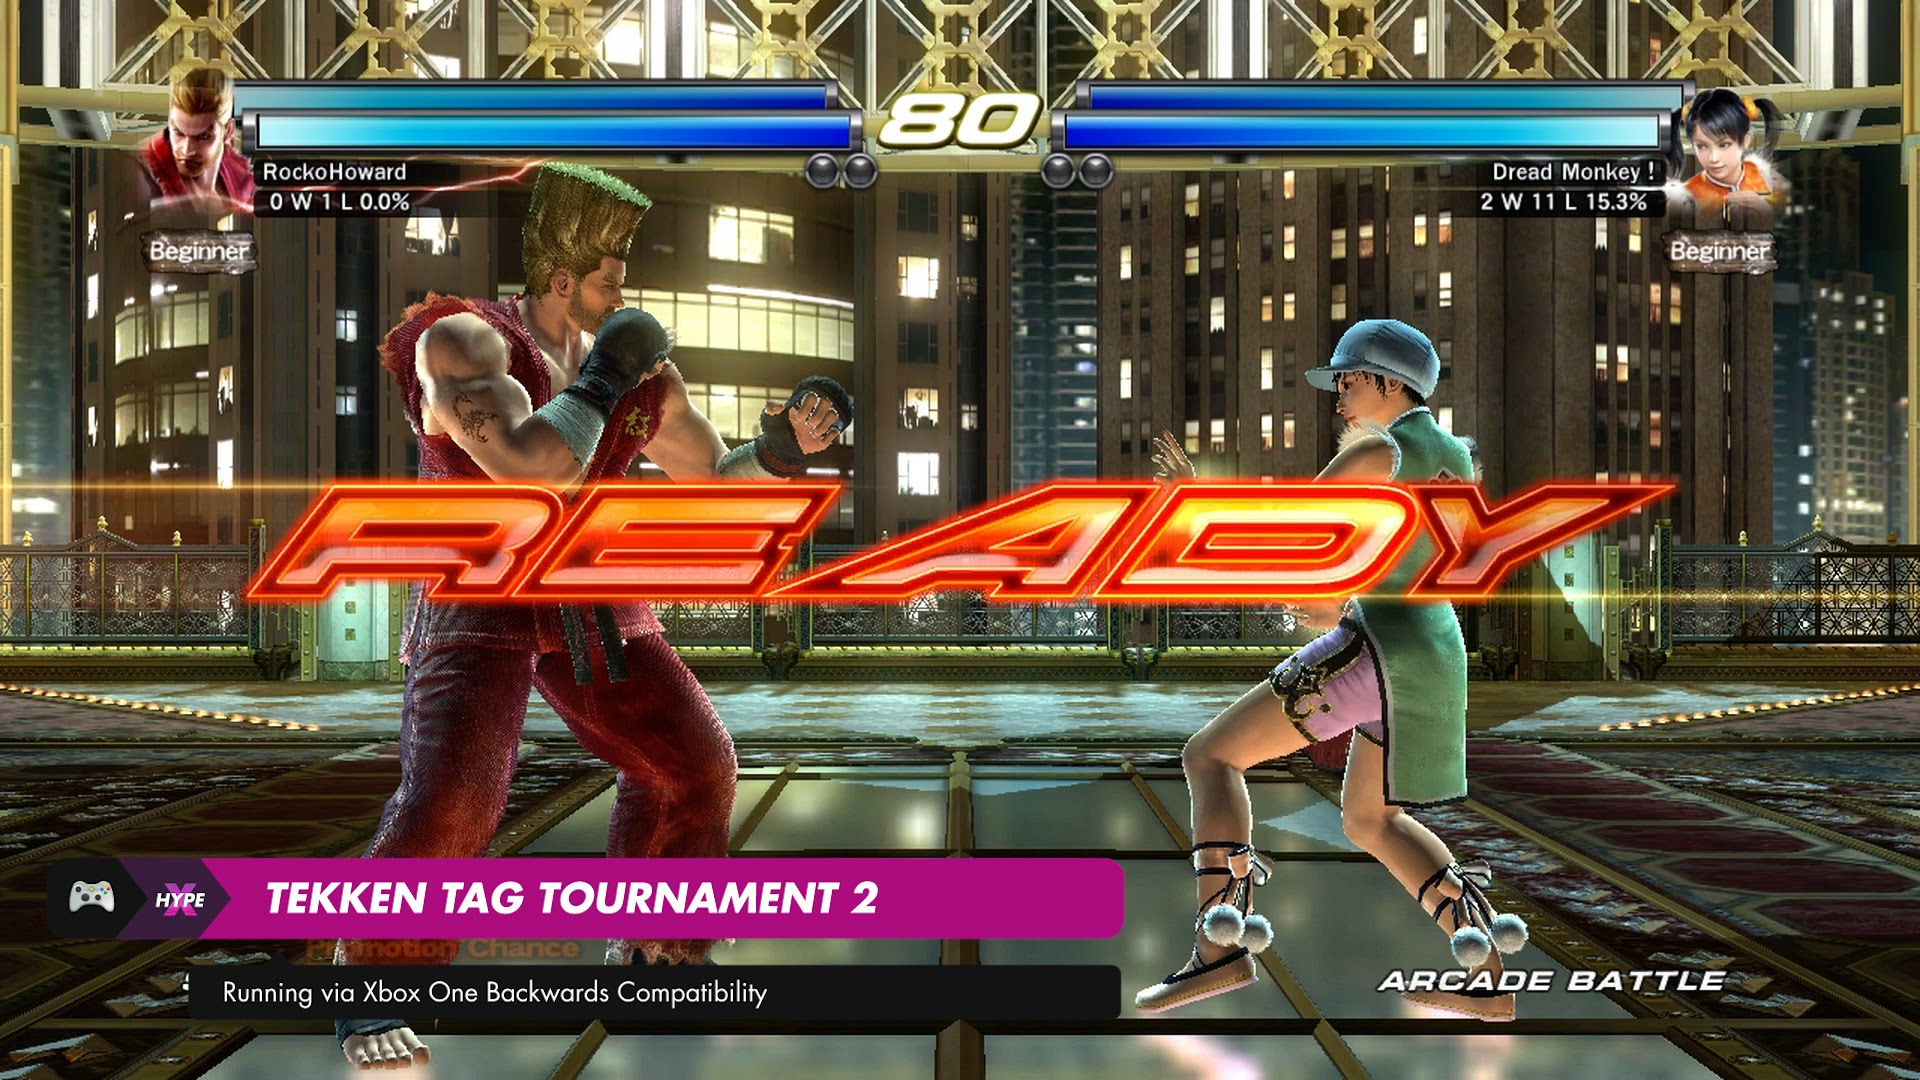 Tekken Tag Tournament Wallpapers Video Game Hq Tekken Tag Tournament Pictures 4k Wallpapers 2019